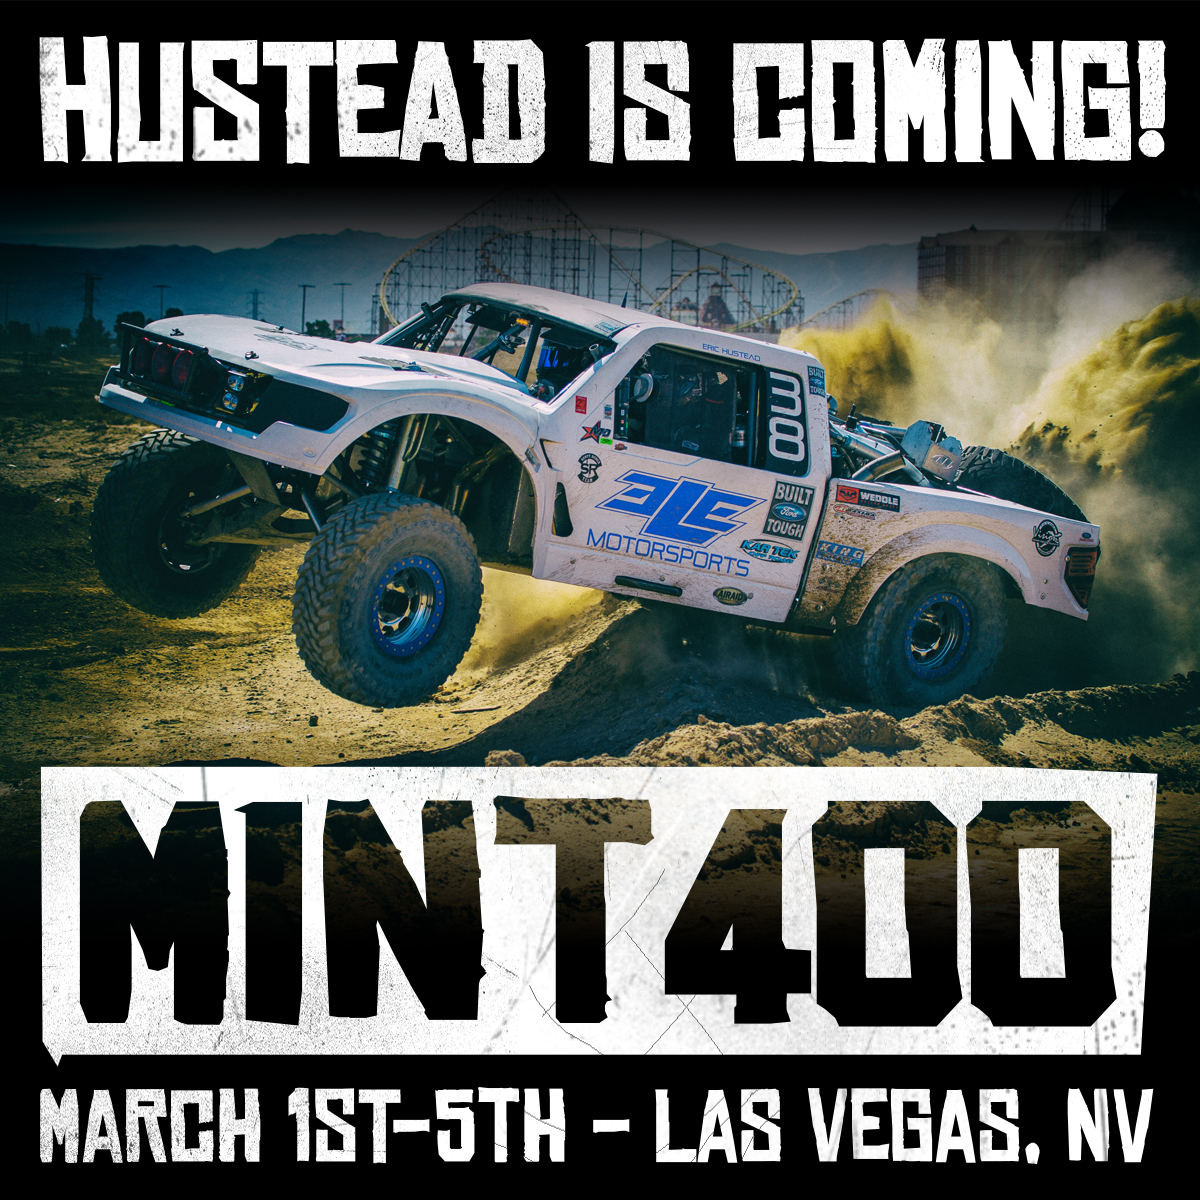 2017_mint_400_hustead_is_coming.jpg